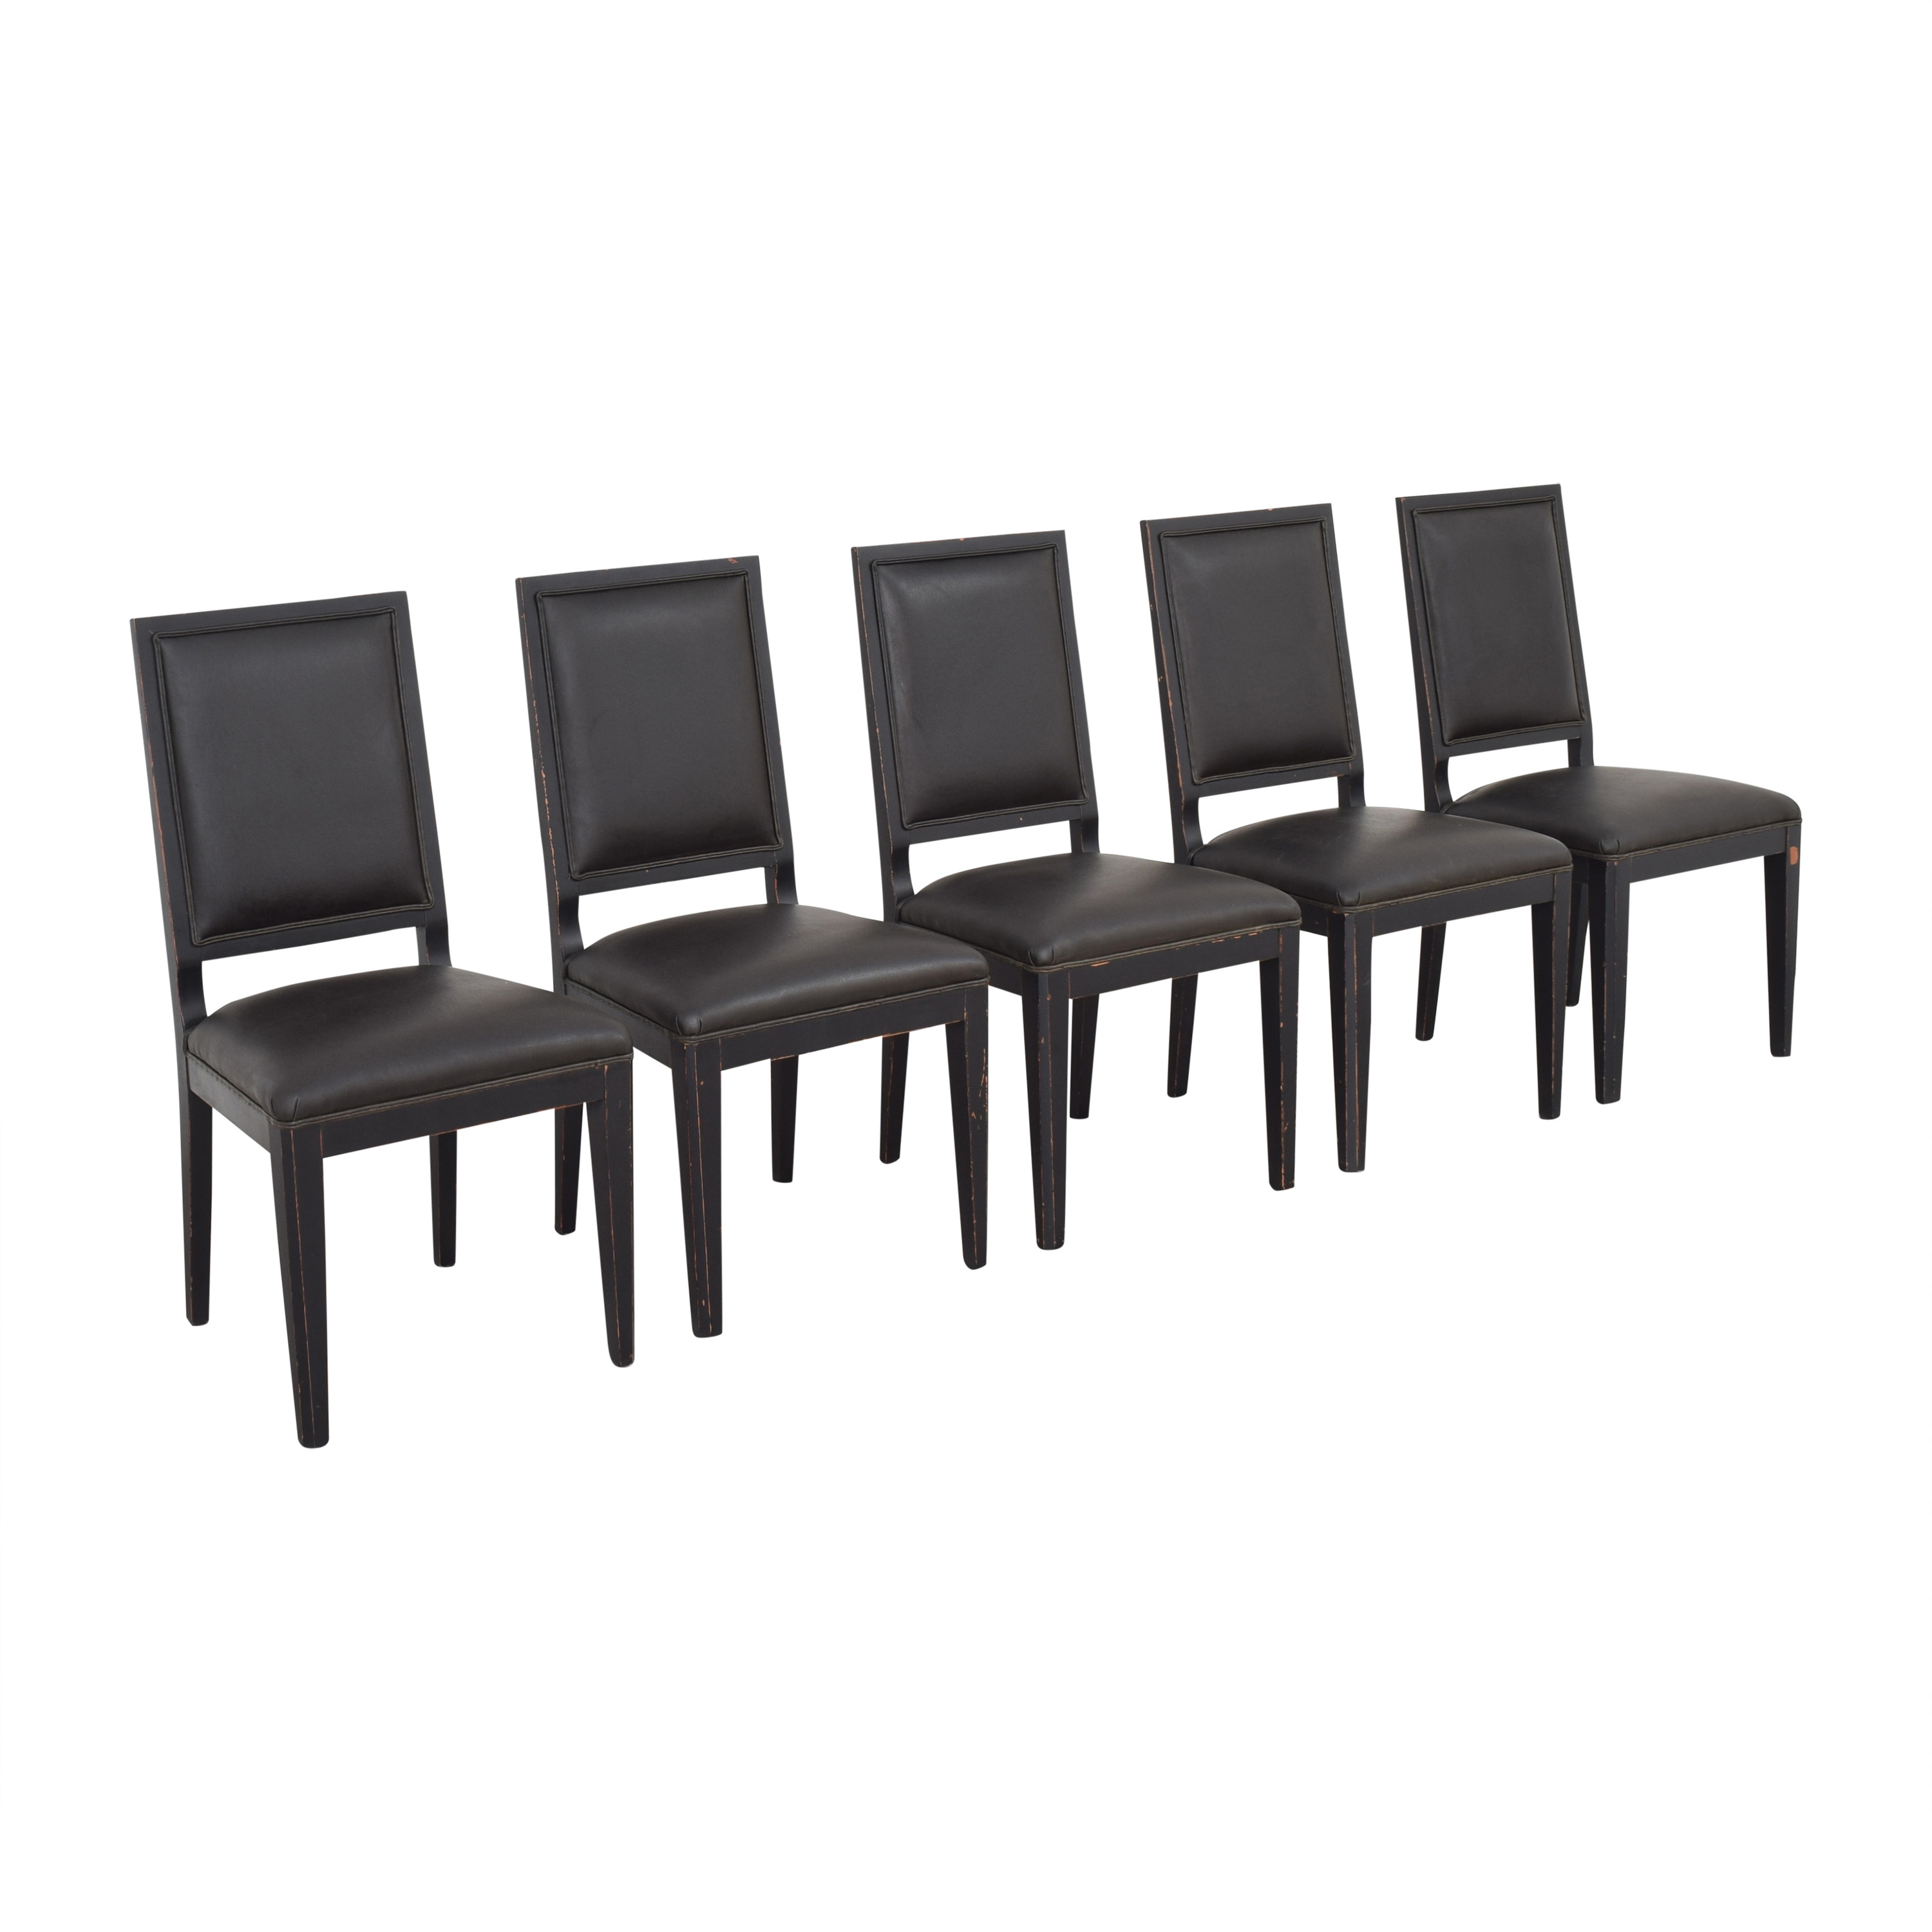 shop Crate & Barrel High Back Dining Chairs Crate & Barrel Dining Chairs